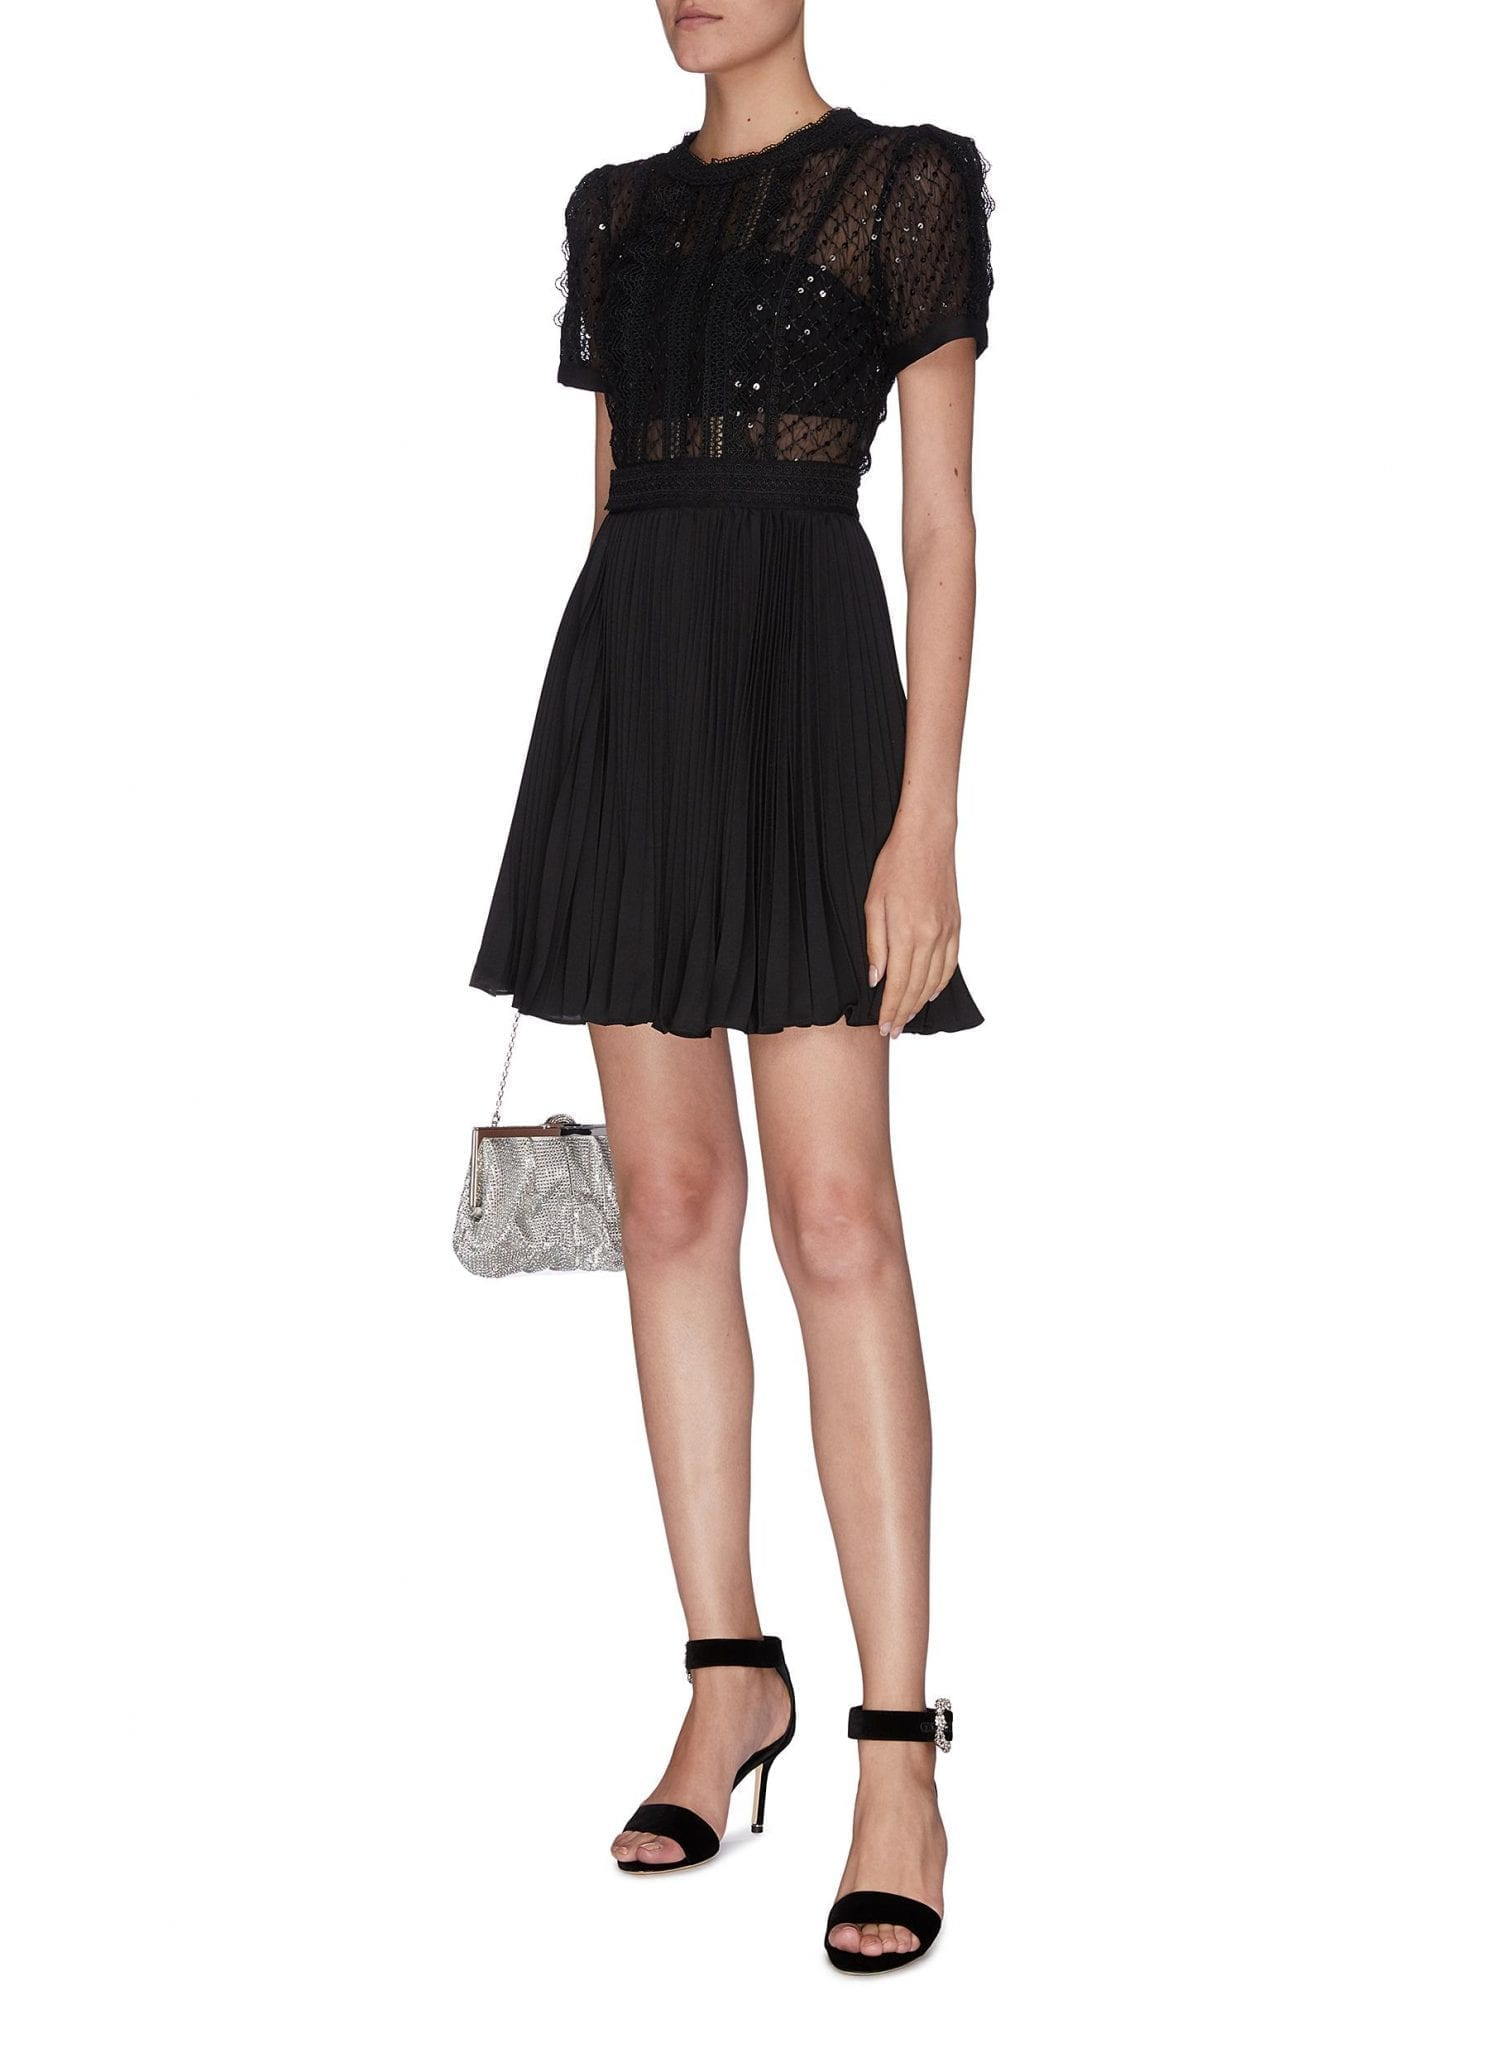 SELF-PORTRAIT Sequin Mesh Panel Puff Sleeve Mini Dress